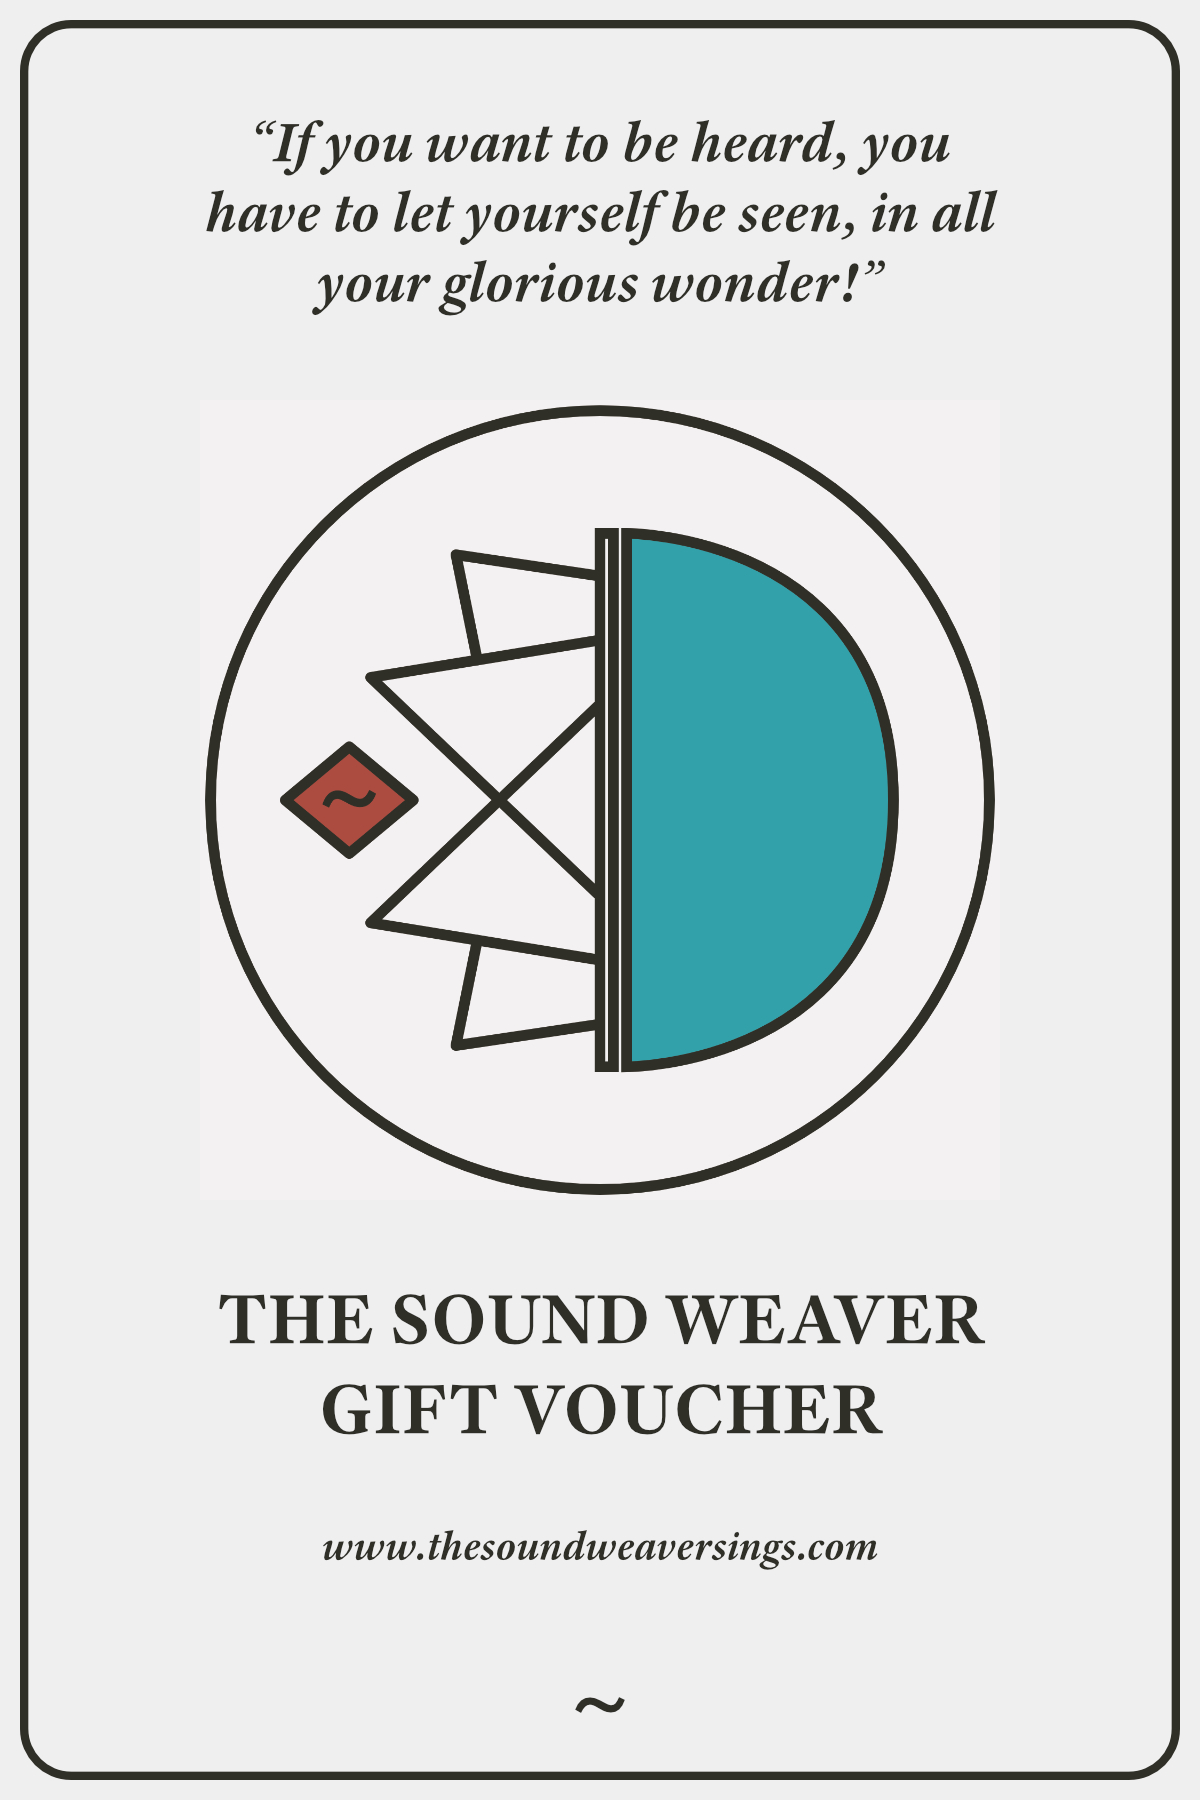 Buy Now - The Breath Of Life Gift Voucher